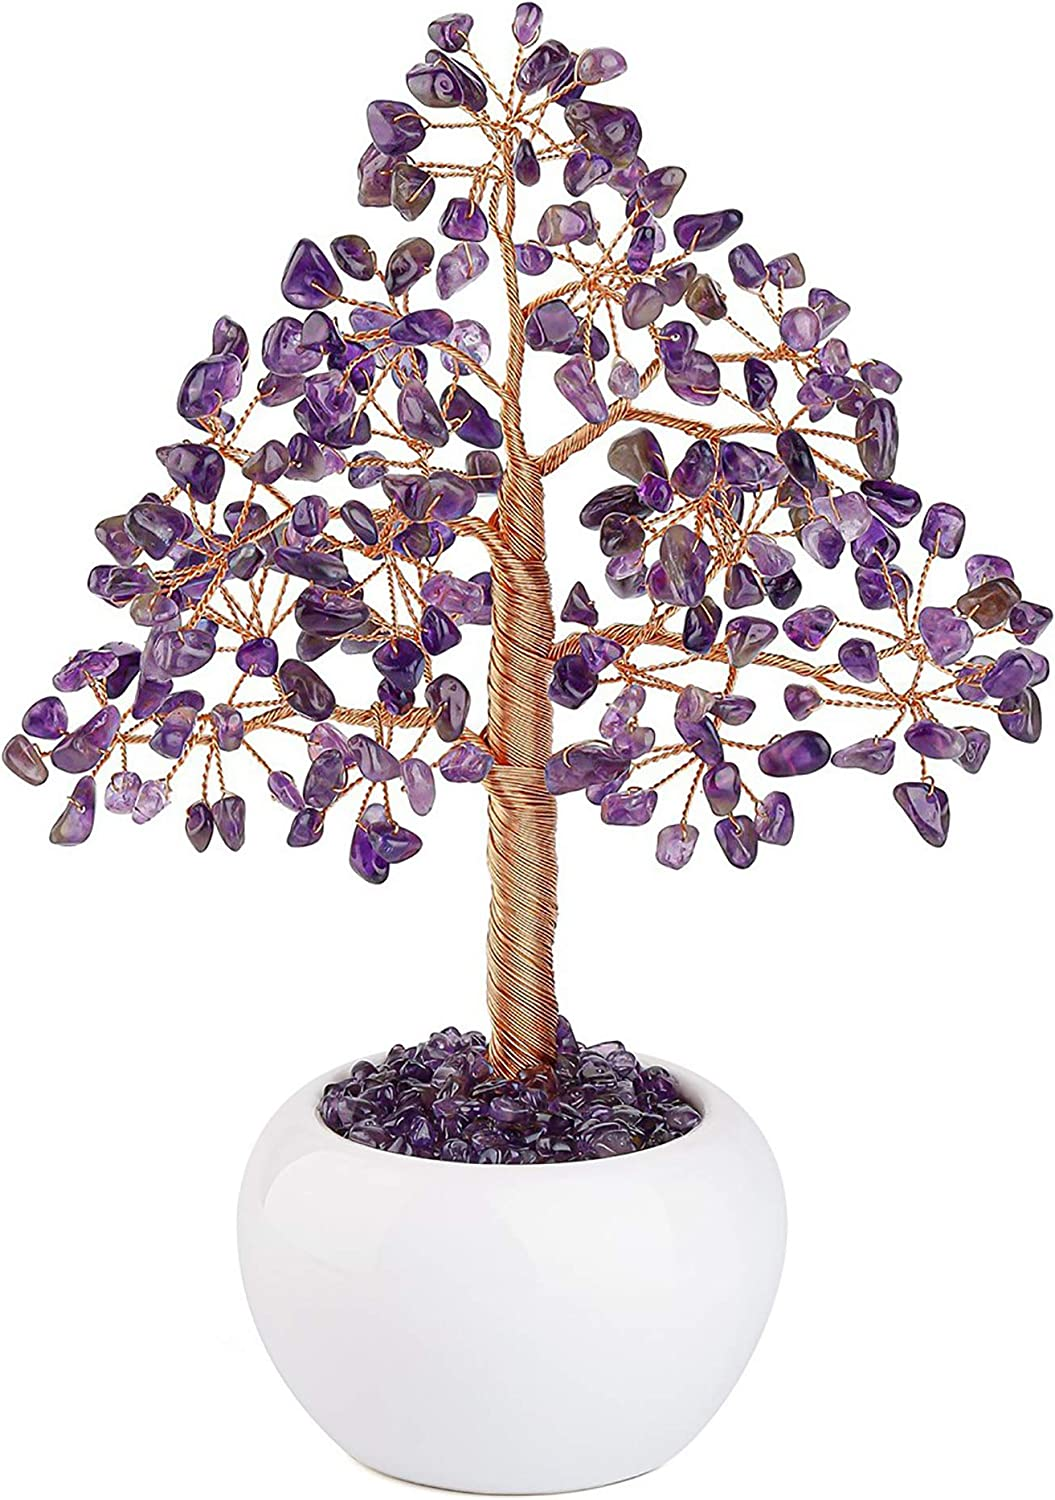 CrystalTears Amethyst Crystal Money Tree Feng Shui Natural Healing Crystal Gemstone Bonsai Tree for Home Office Decor Good Luck